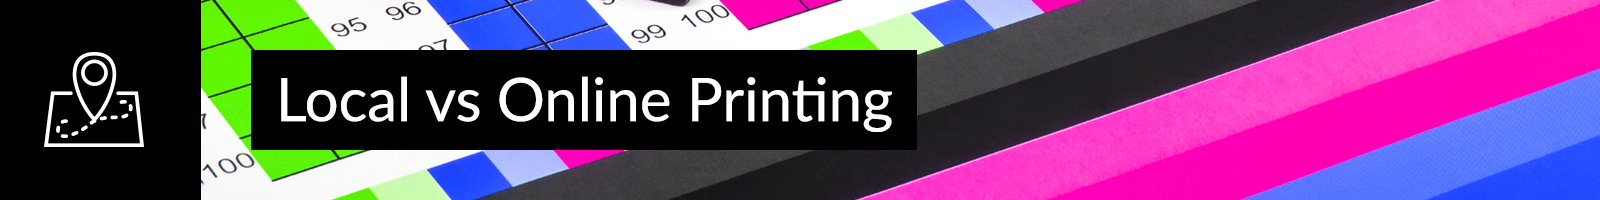 Local vs Online Printing